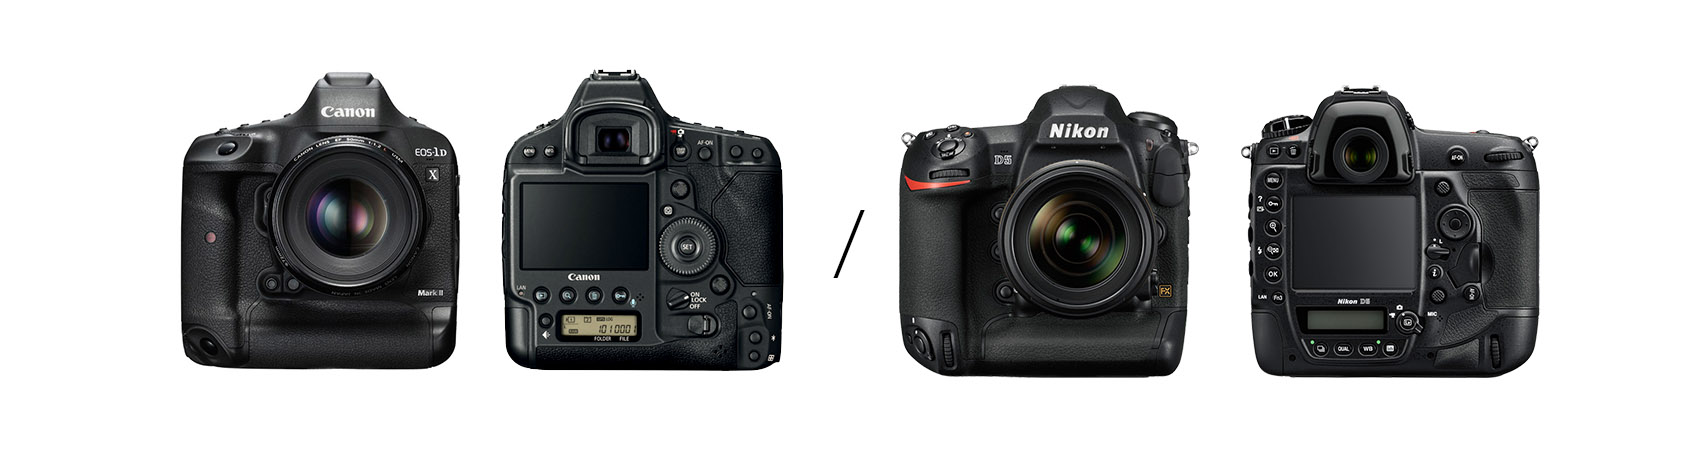 canon 1dx mark ii vs nikon d5, canon 1dx mark ii, nikon d5